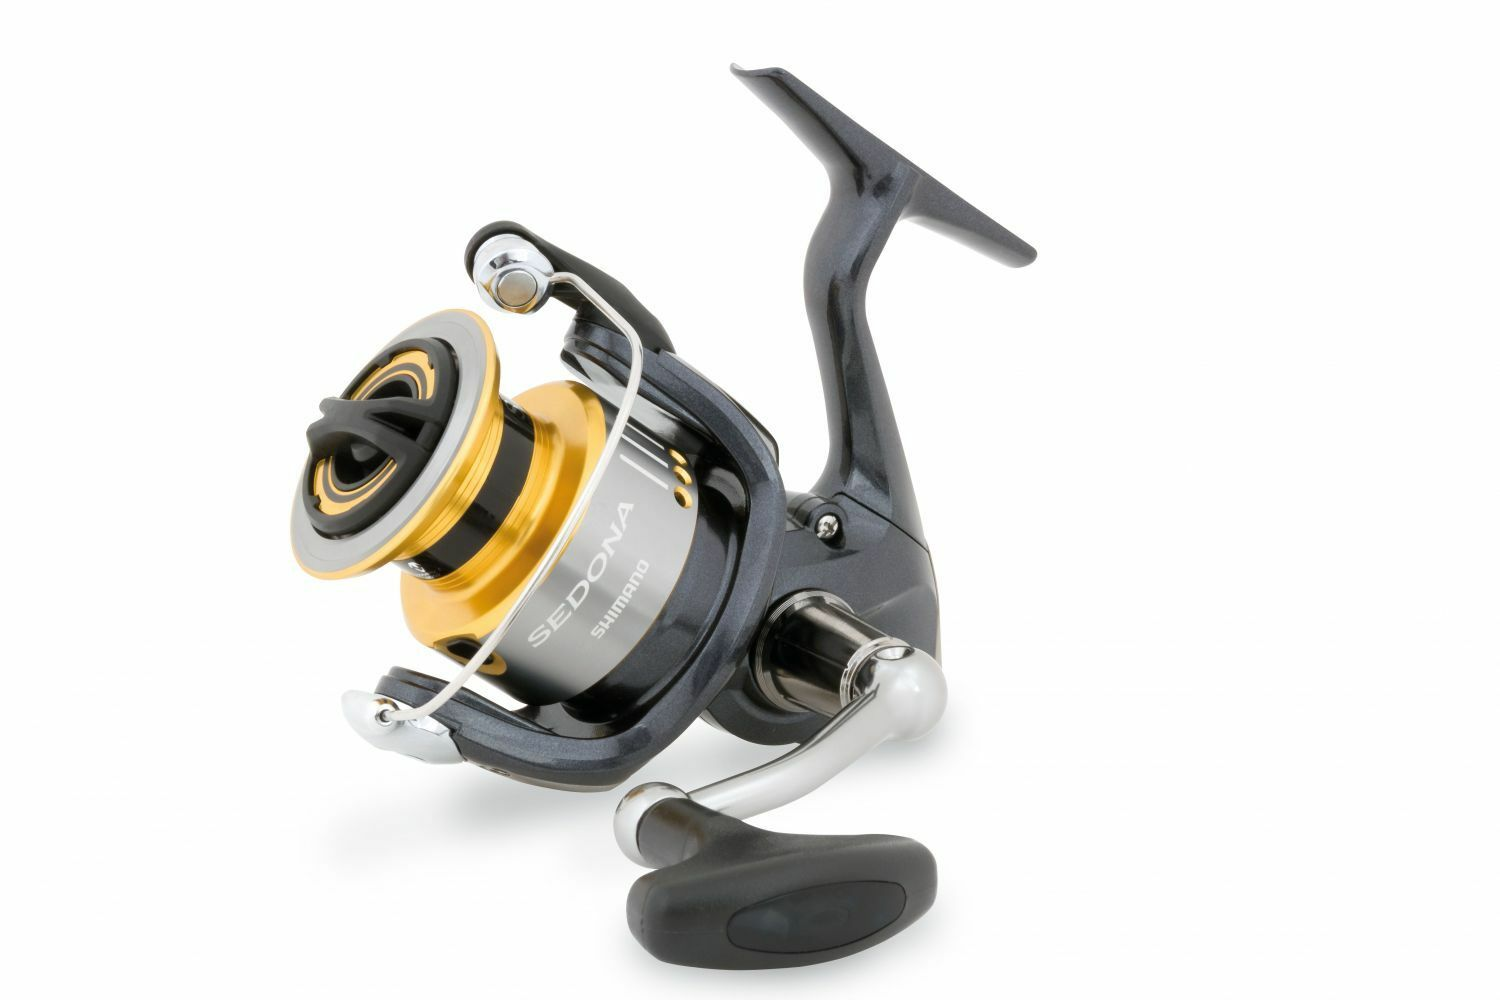 Shimano sedona c5000 vu frontbremsrolle papel allroundrolle angel papel pesCoche